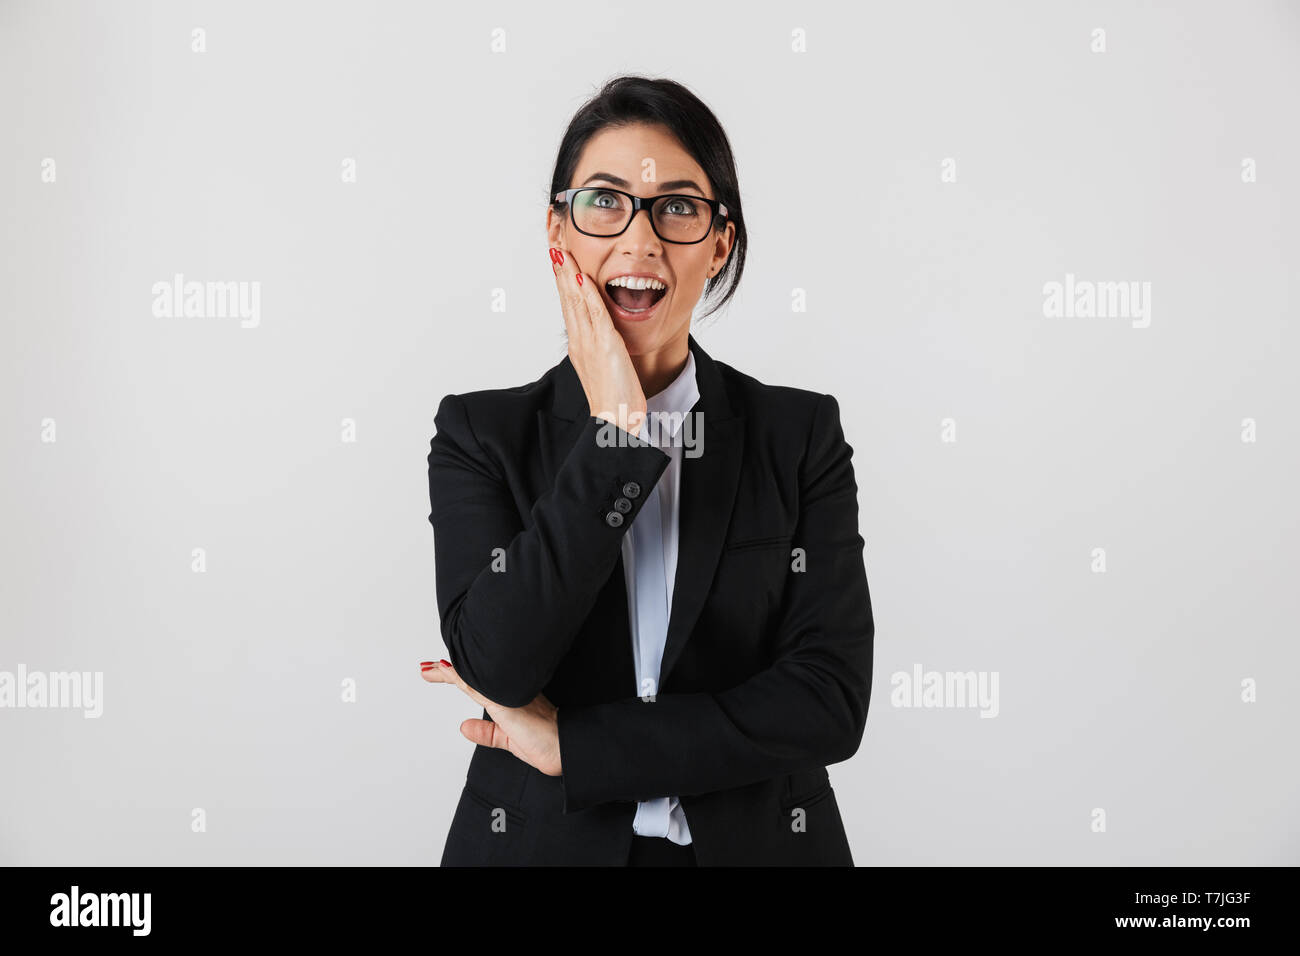 Portrait of happy businesswoman 30s in formal wear and eyeglasses standing in the office isolated over white background - Stock Image